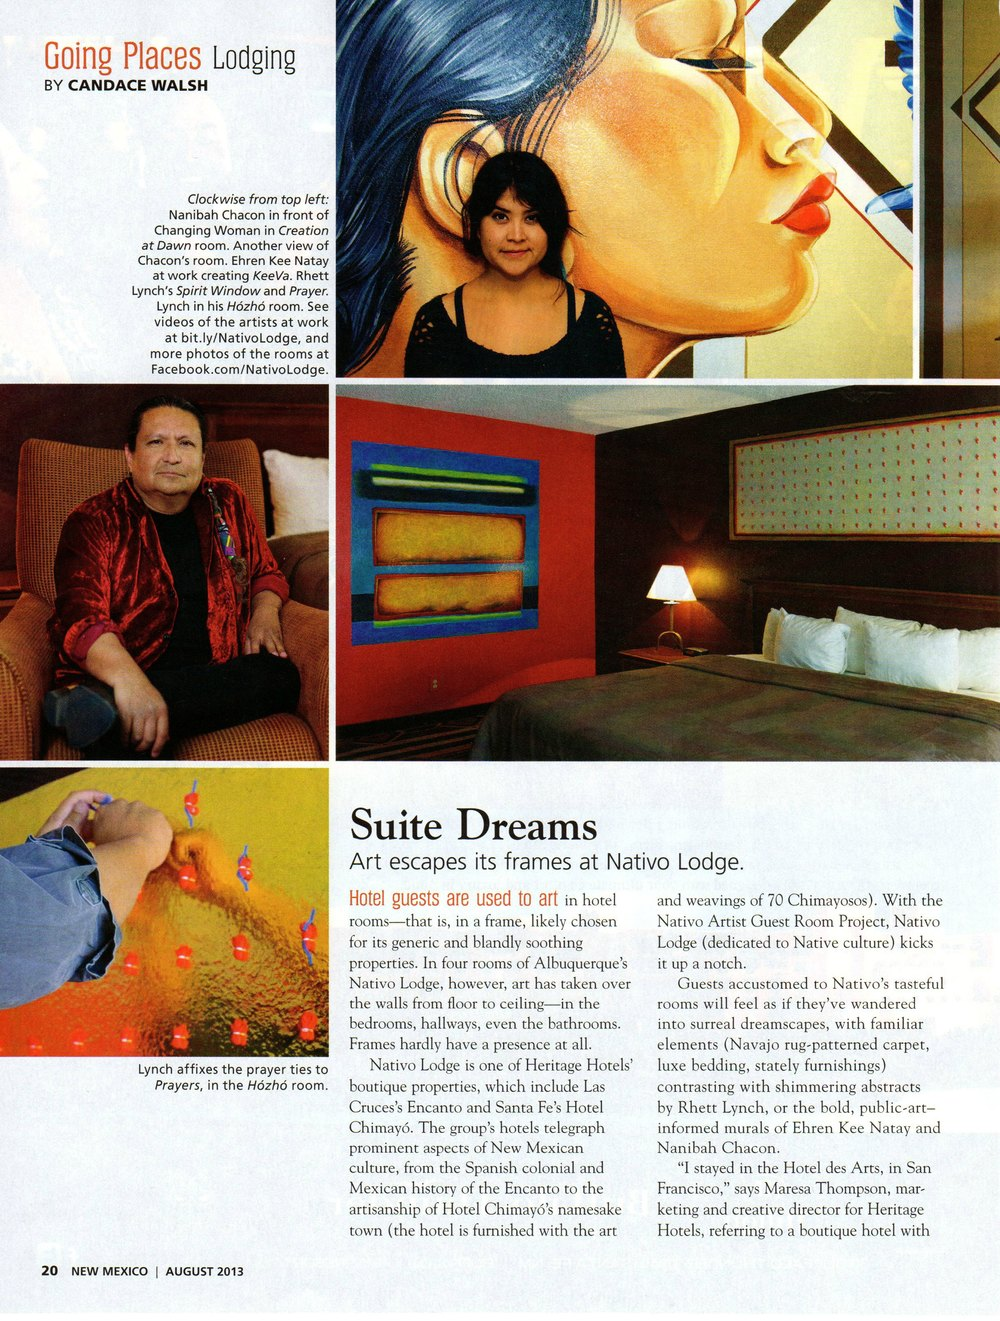 New Mexico Magazine August 2013 p.20.jpg